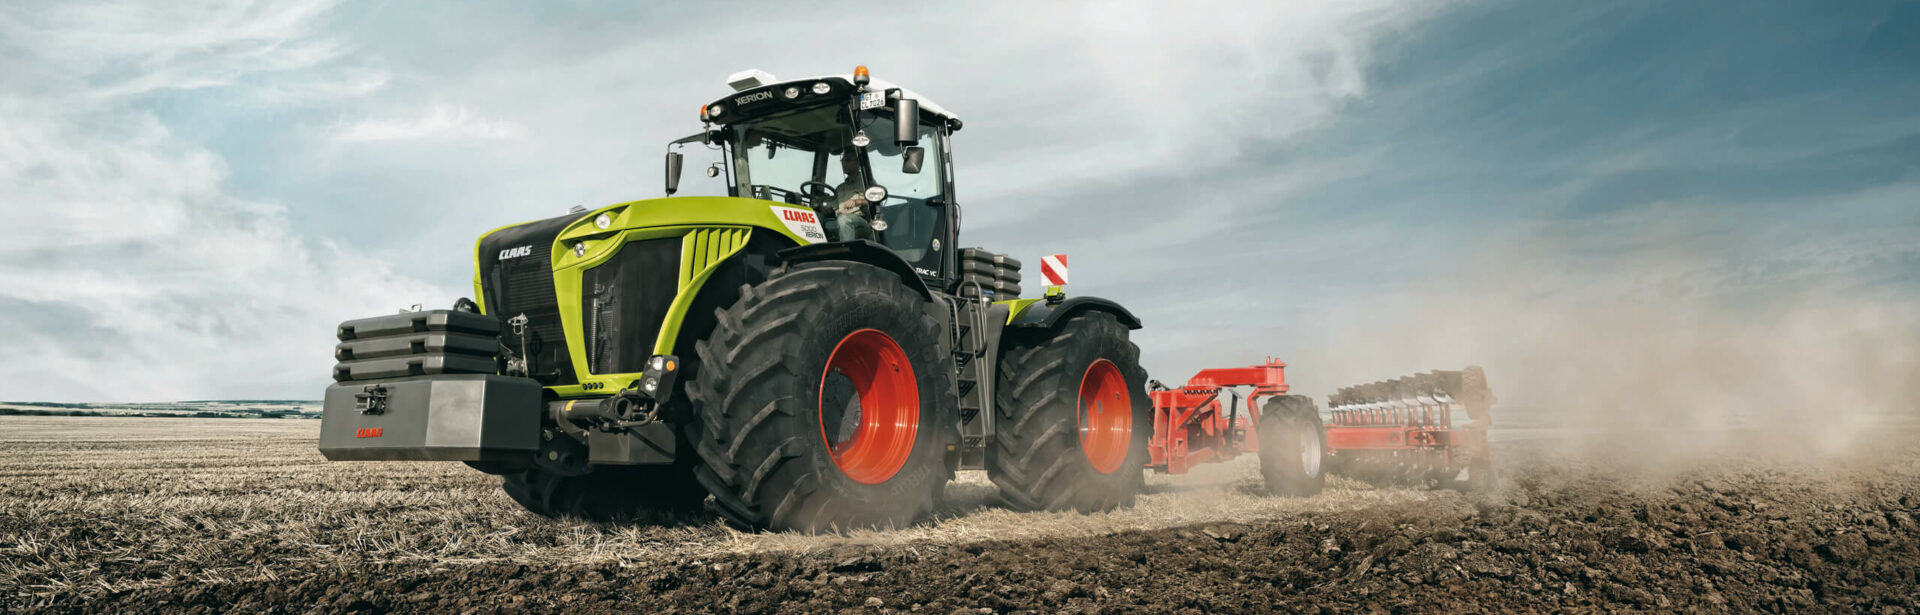 Claas dealerschap